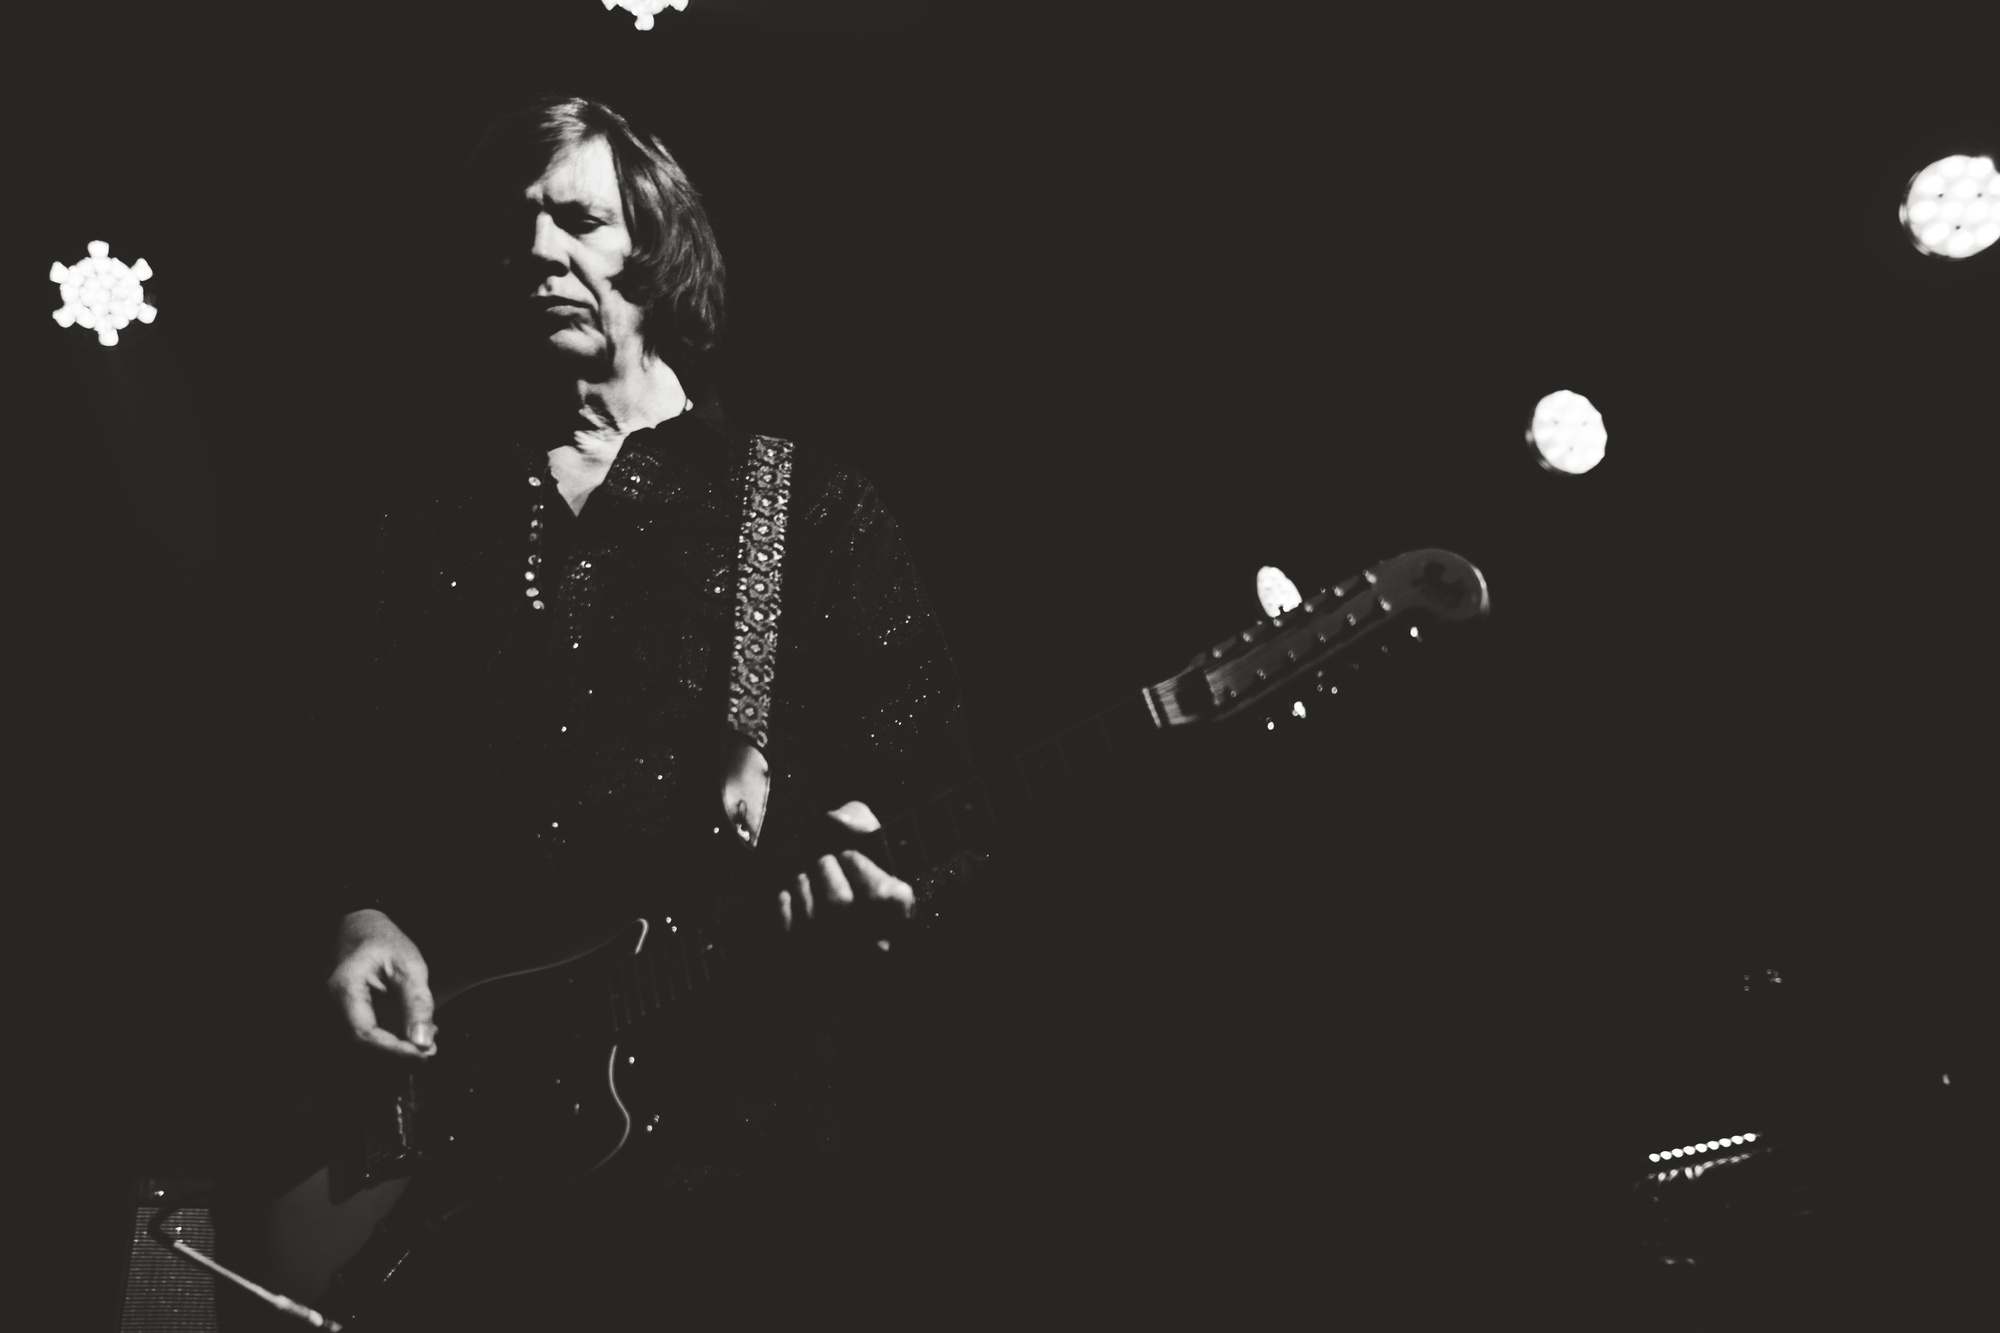 Thurston Moore Group op Sonic City, Kay Lacombe